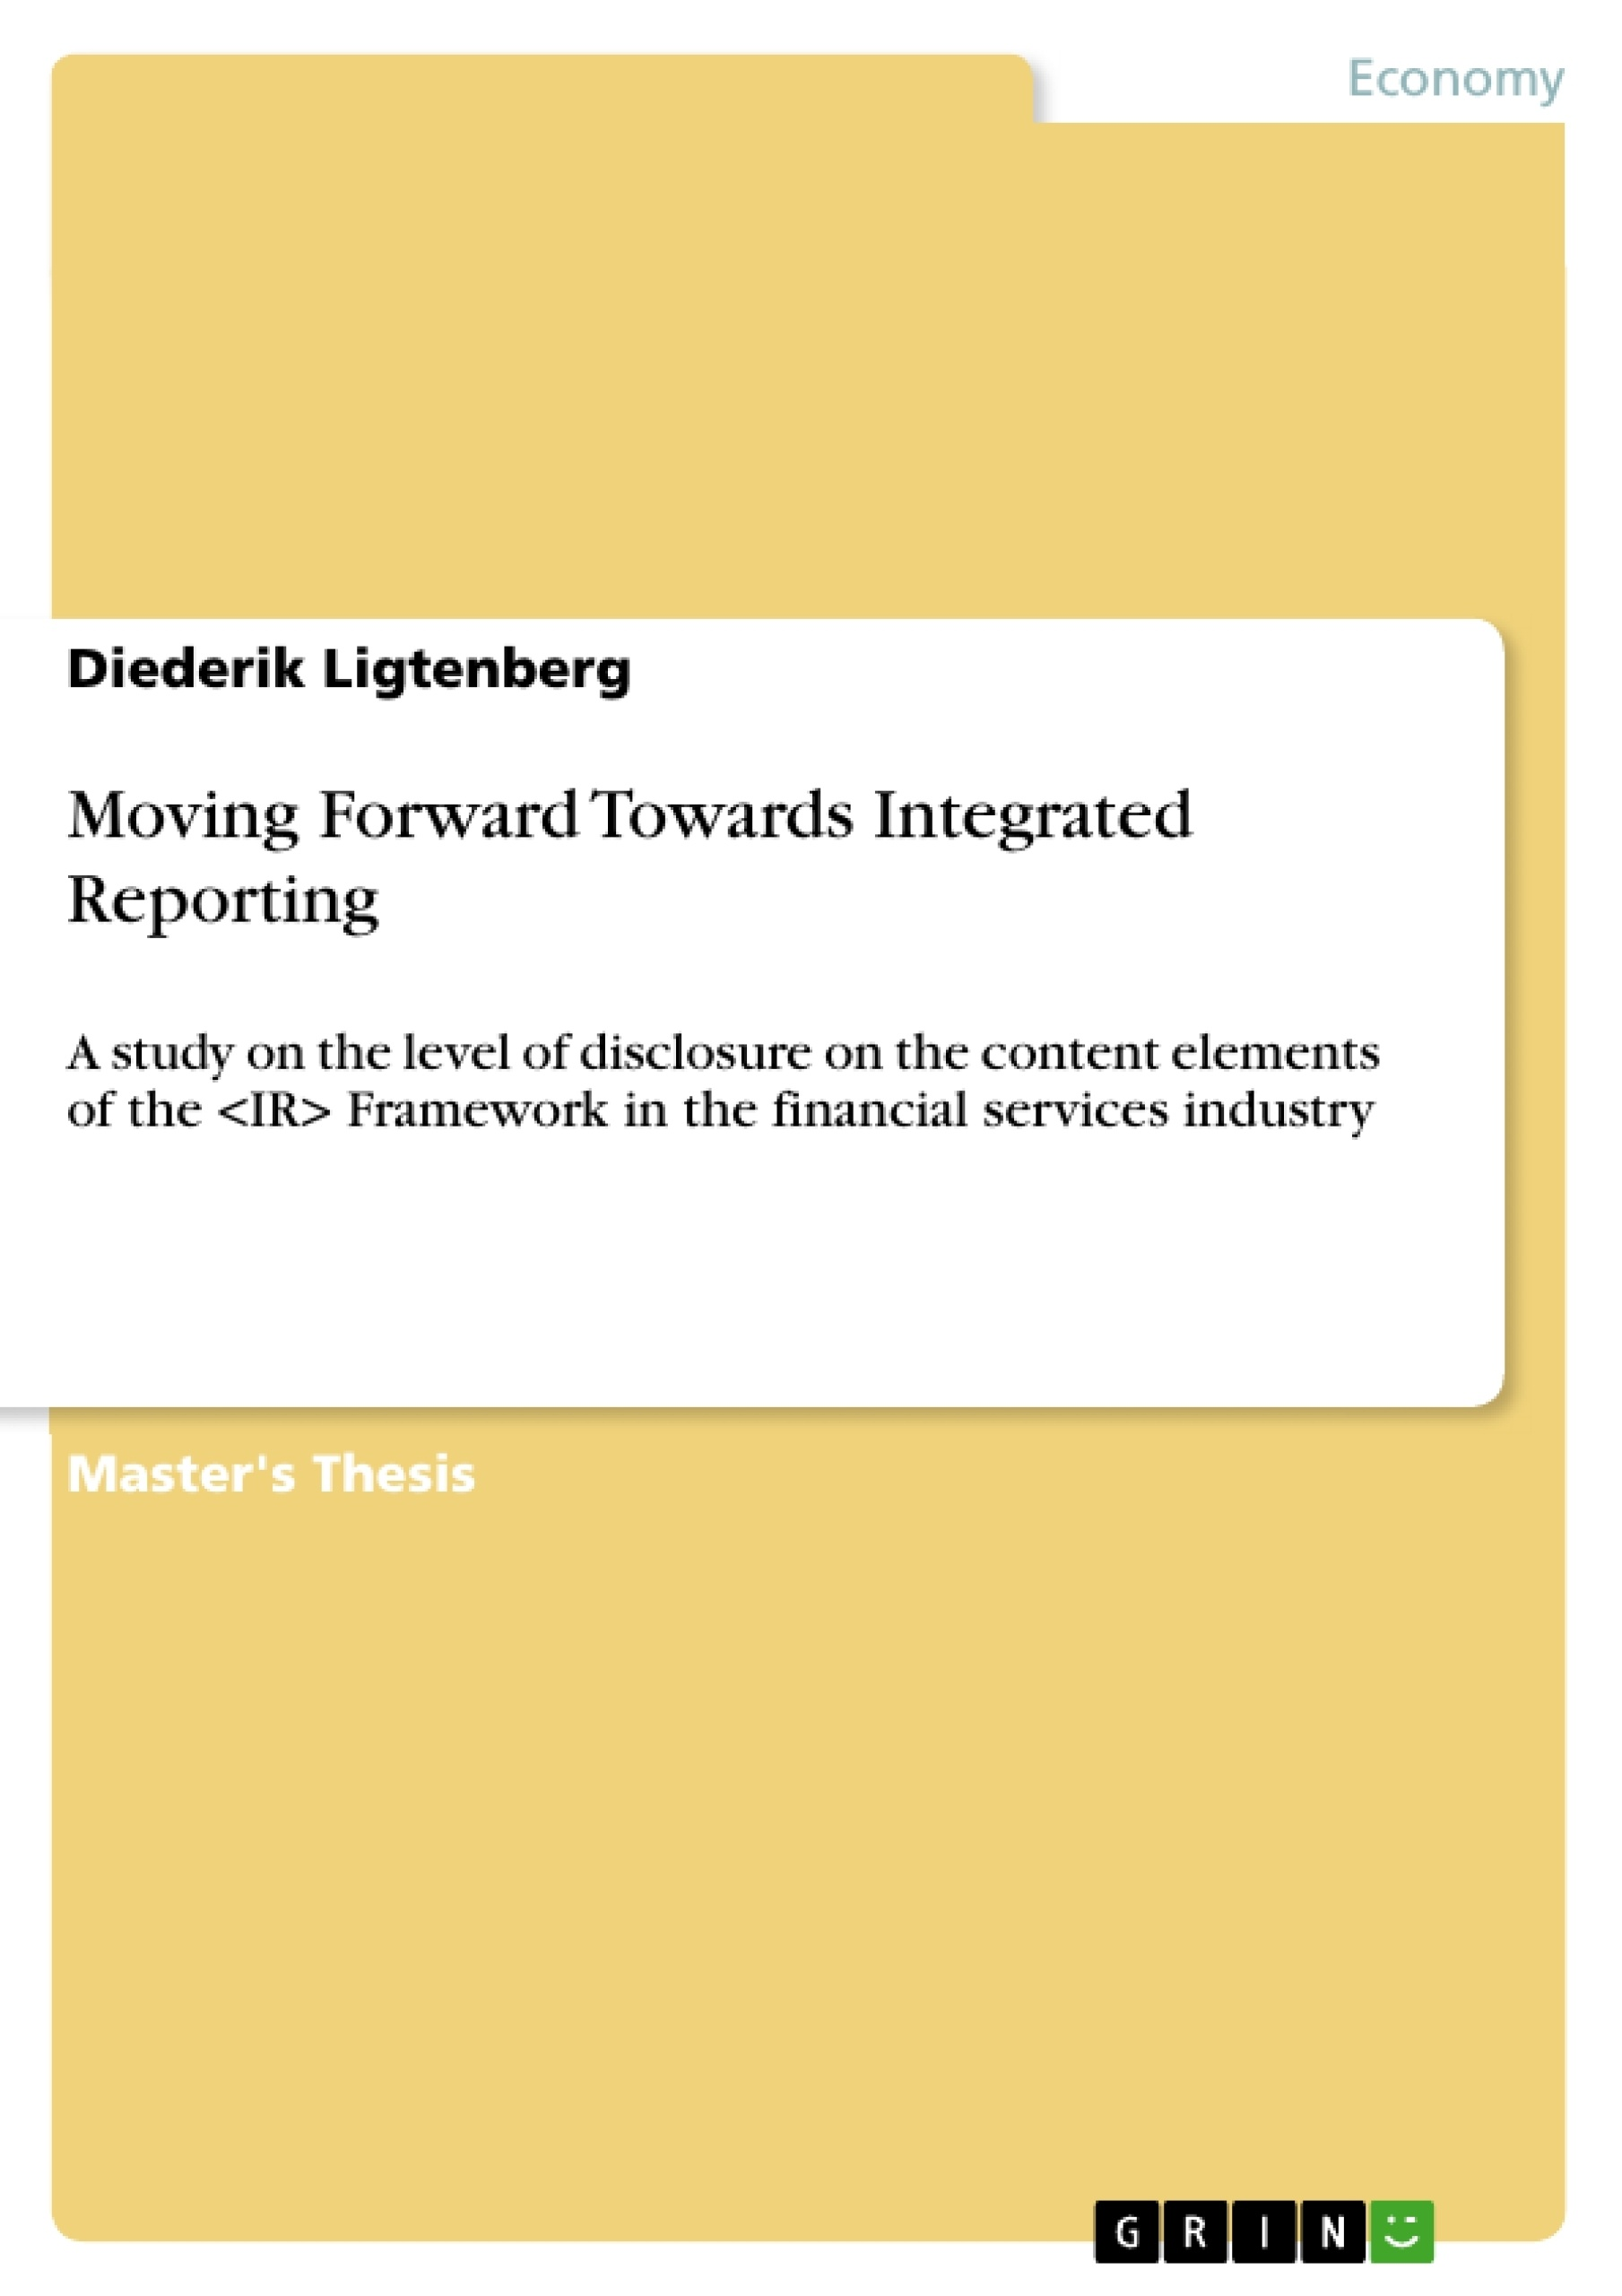 Title: Moving Forward Towards Integrated Reporting